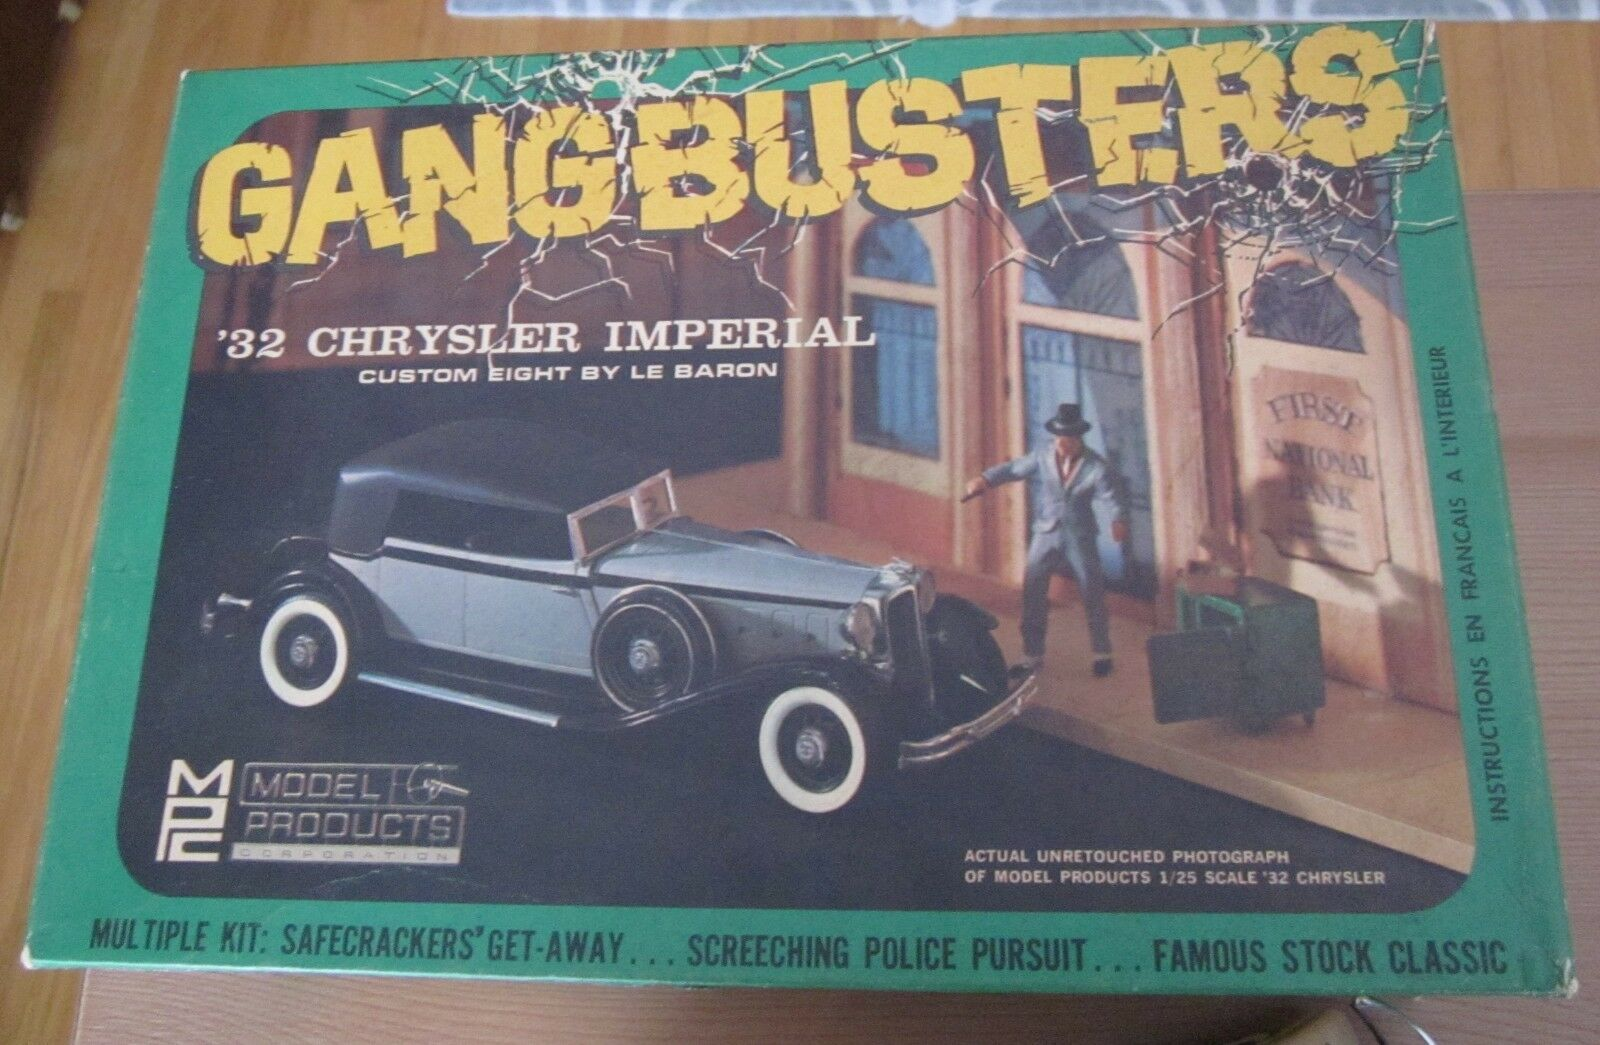 Mpc gangbusters 1932 chrysler imperial le baron kit   201 gut gebaut und box - 60.